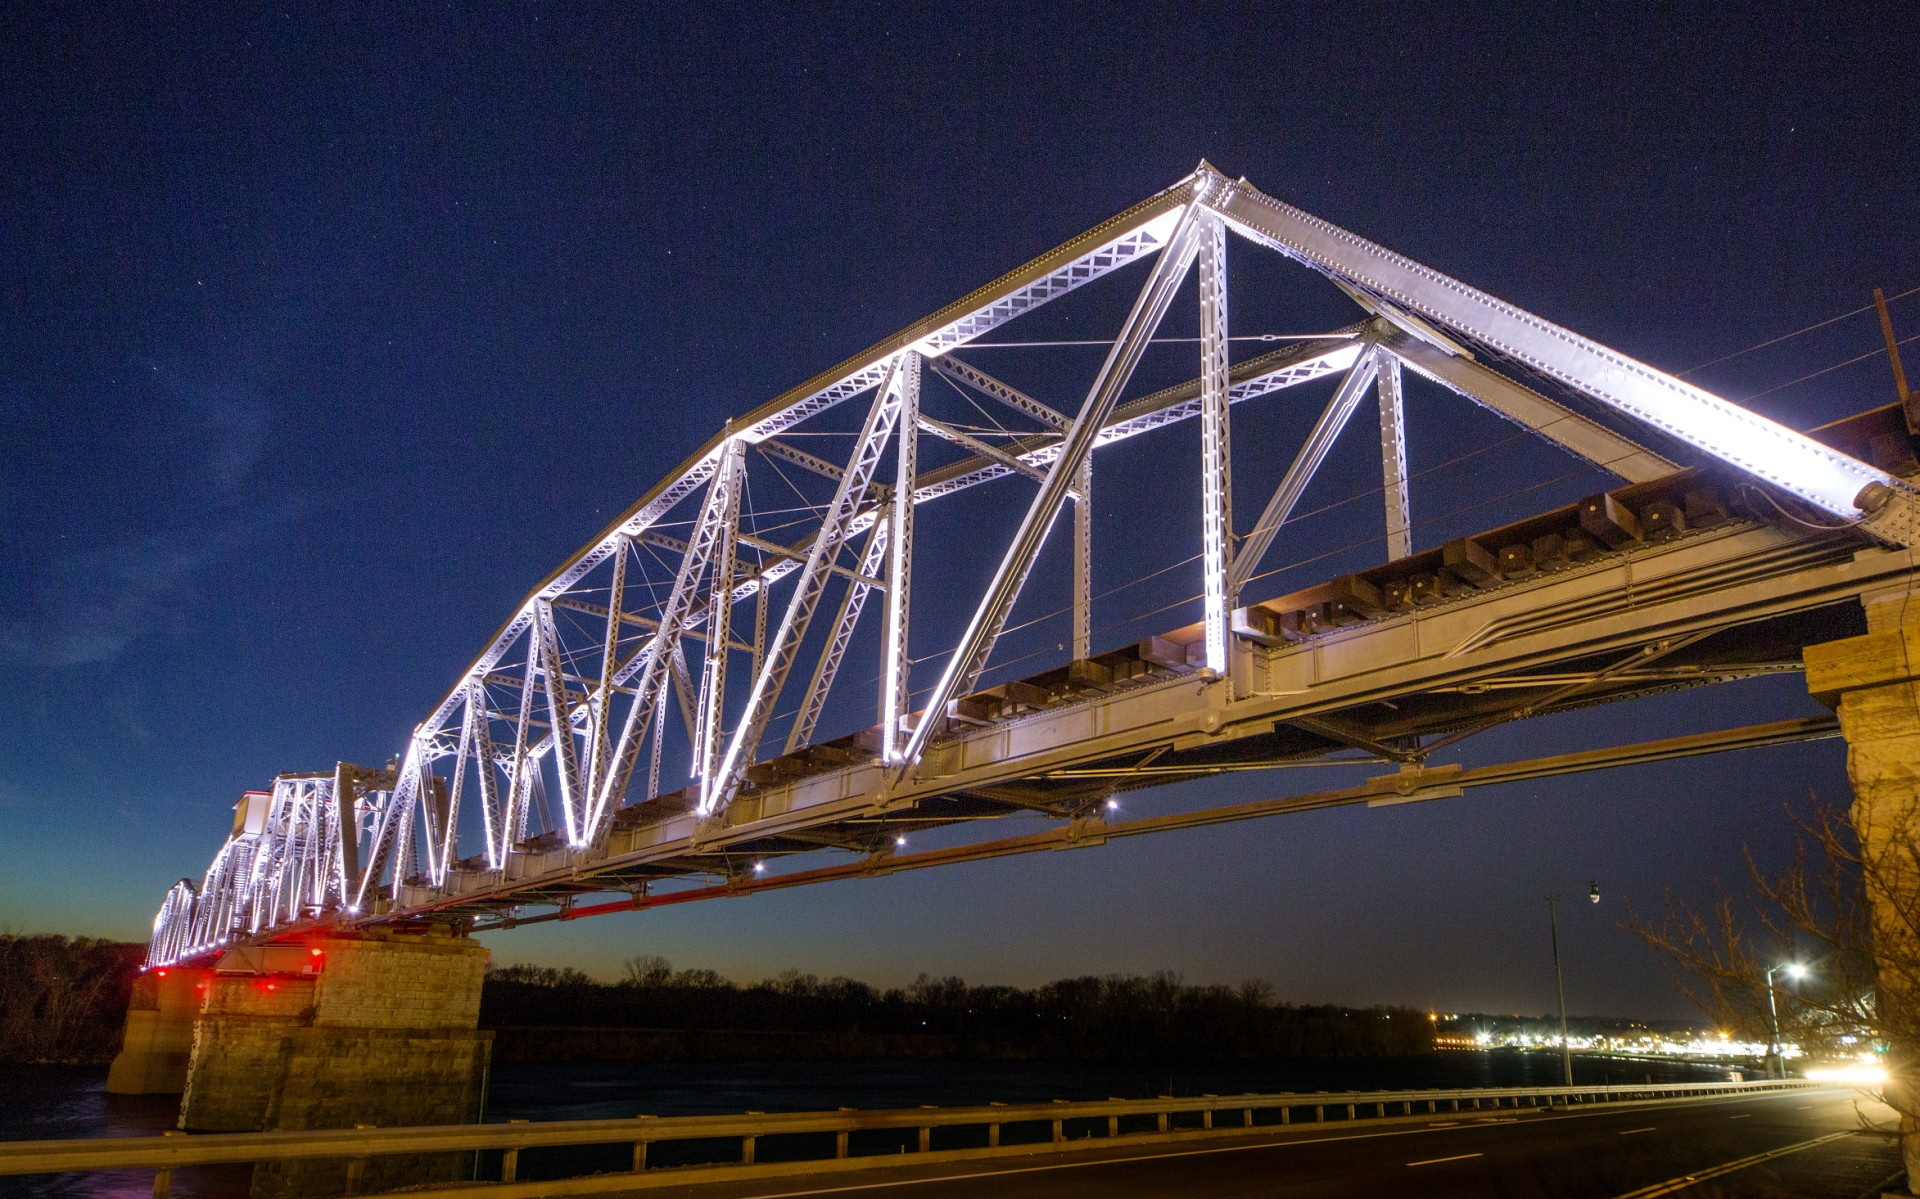 Originally constructed in 1890, the RJ Corman Railroad Bridge is an iconic railroad bridge that spans the Cumberland River in downtown Clarksville, Tennessee.